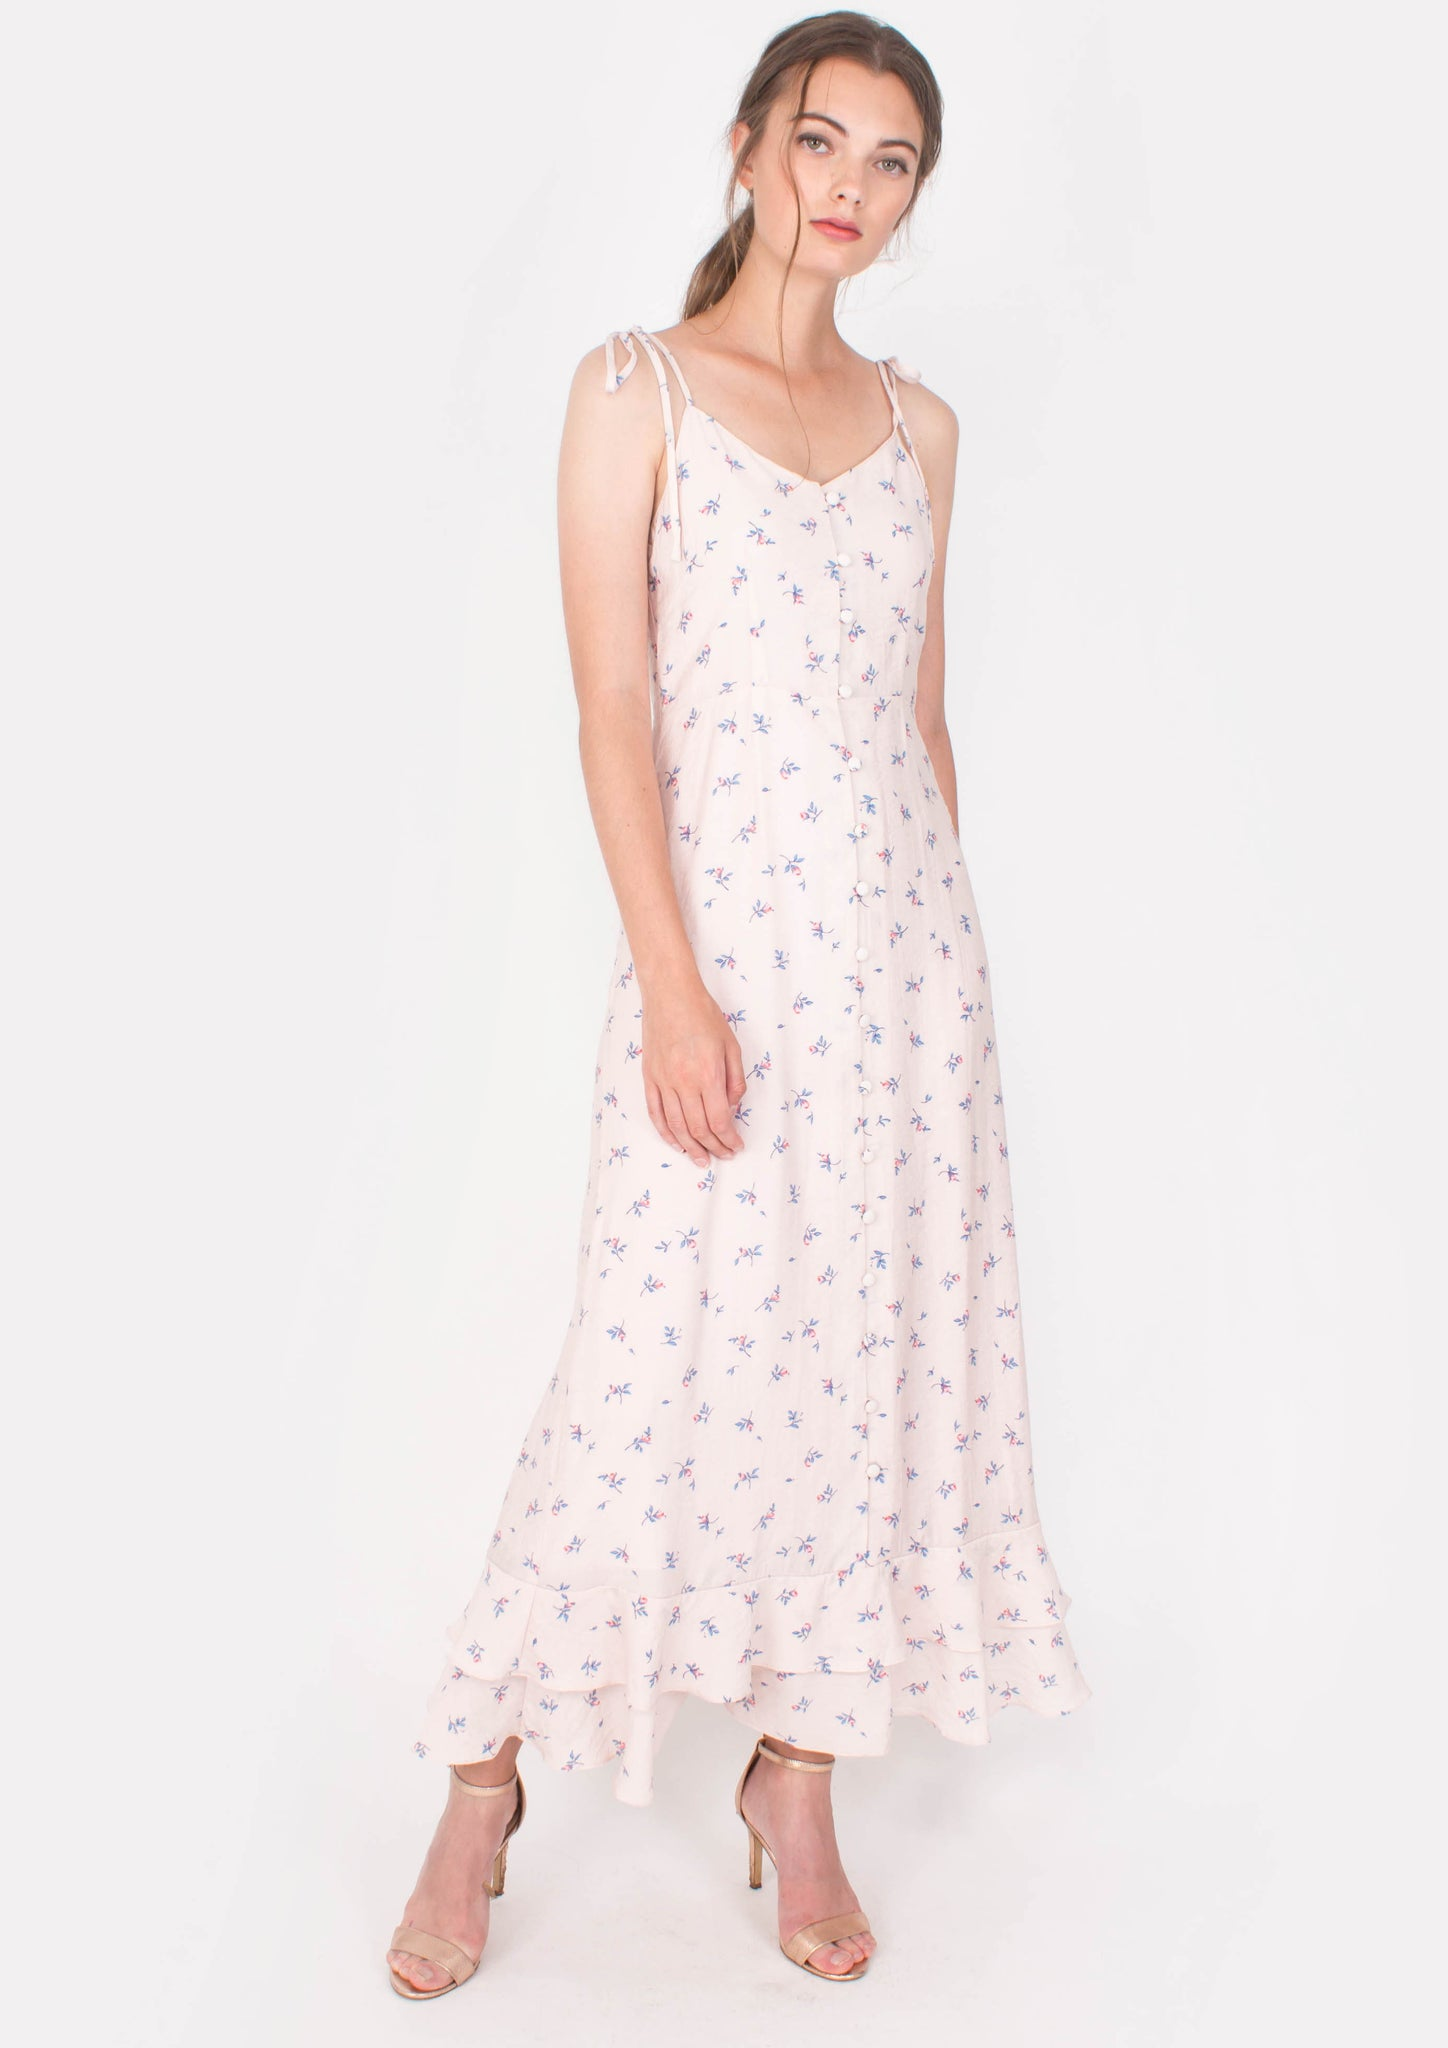 Aspire Maxi Dress (Pink) - Moxie